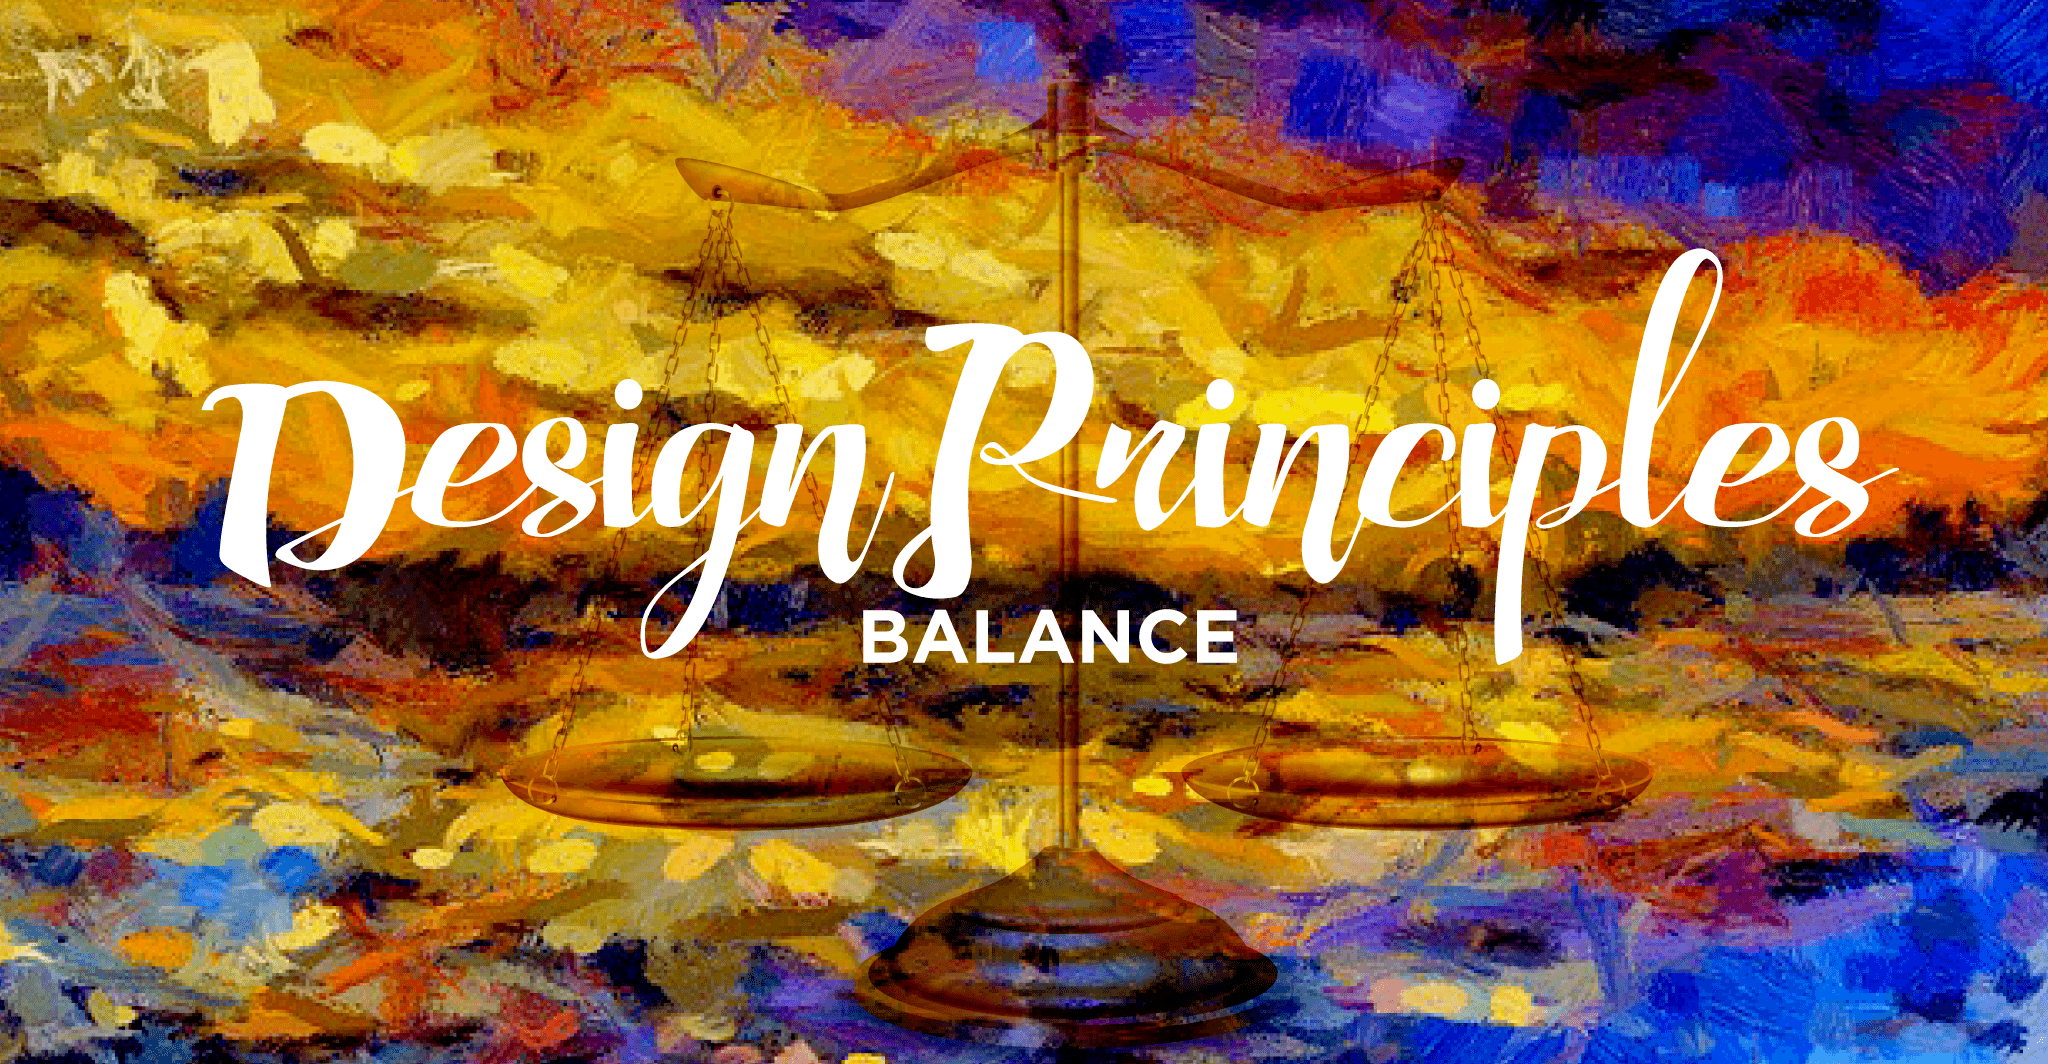 Balance What Does It Mean For Art And Design